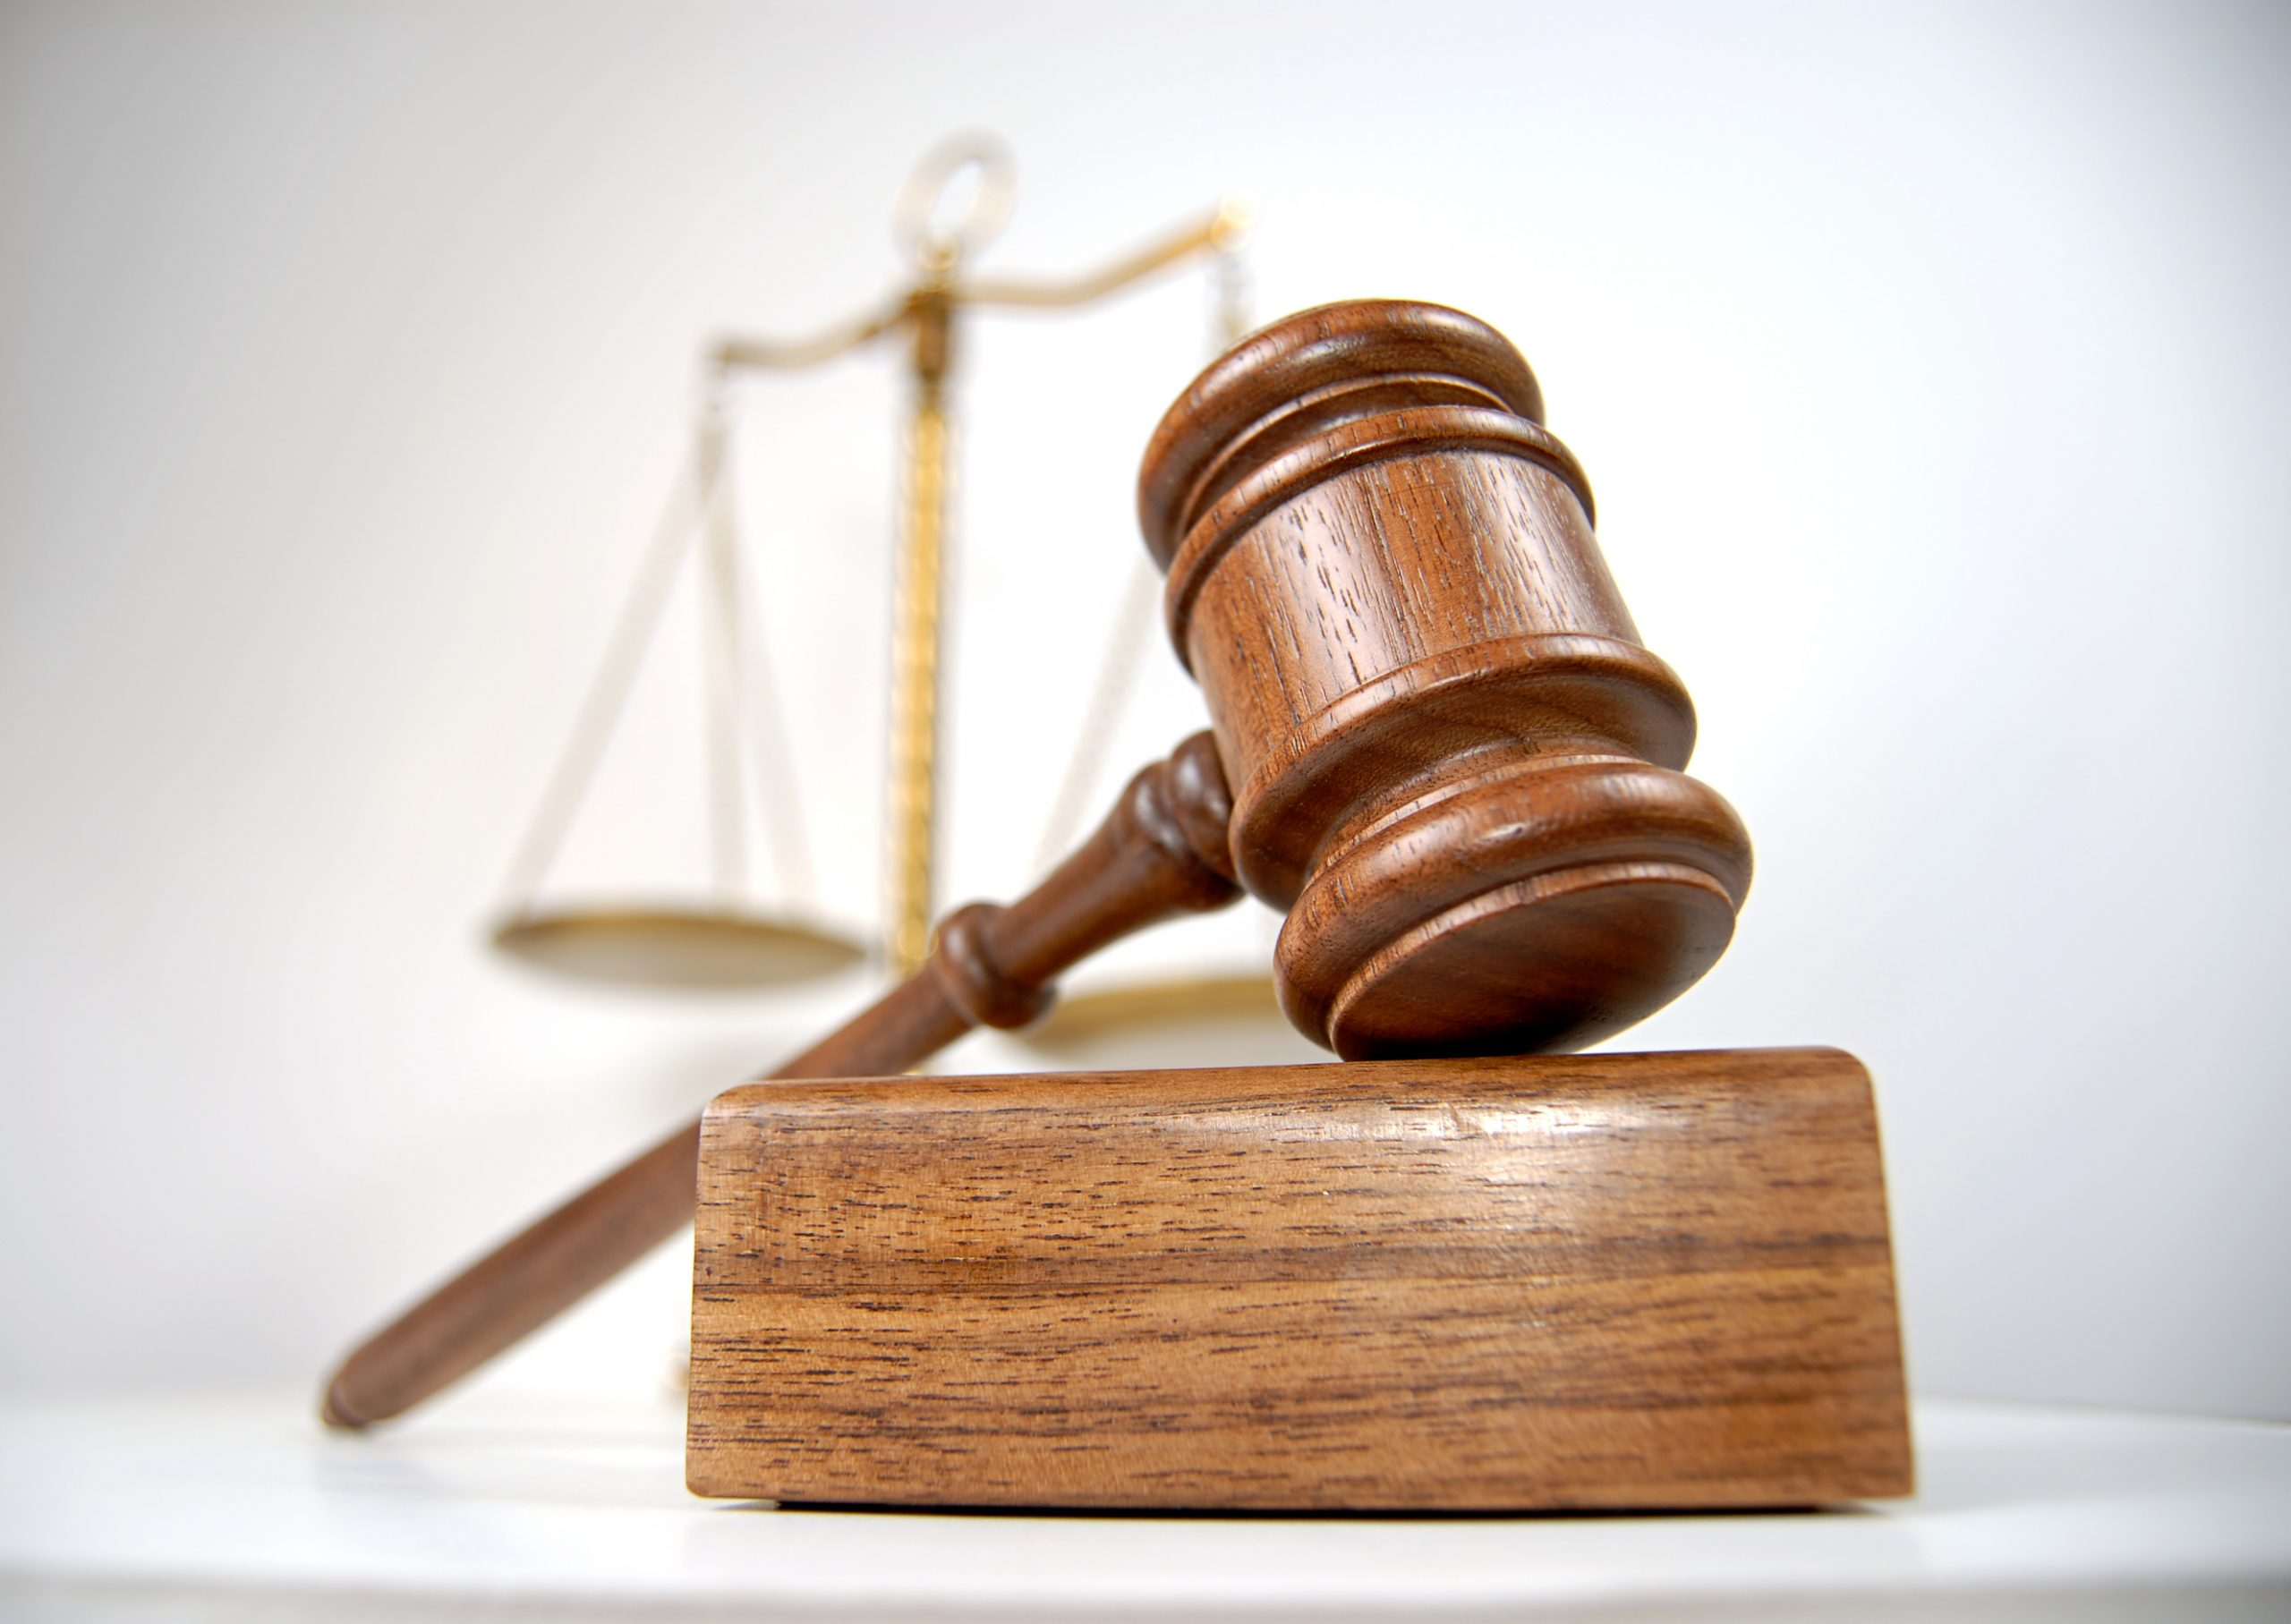 current legal issue on health care In a legal issues in medicine article, annas outlines the bill passed by the house of representatives, the bills pending in the senate, and the position of the current administration on these issues.